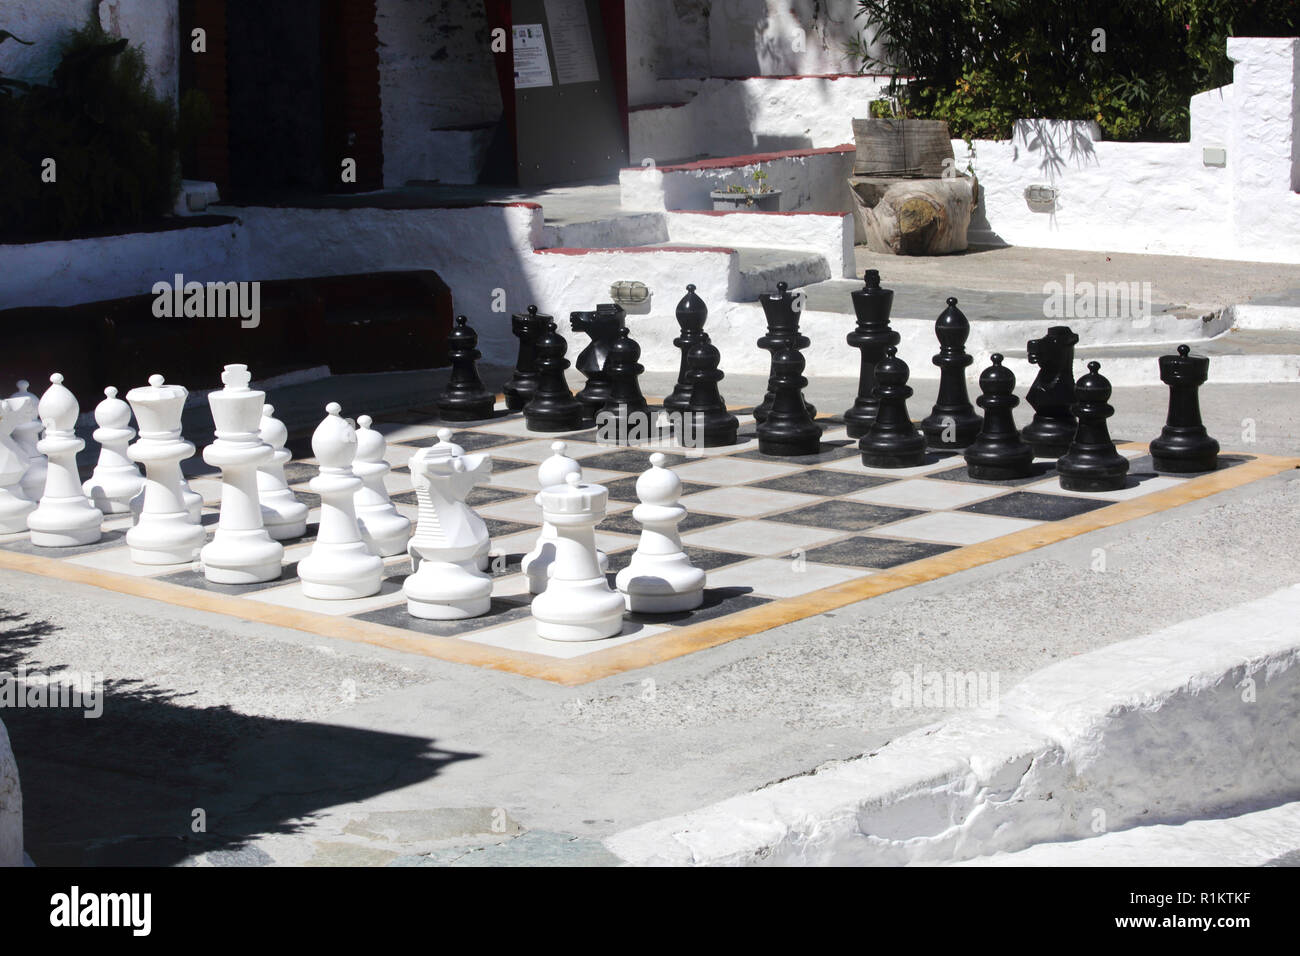 Giant Chess Board Stock Photos & Giant Chess Board Stock Images - Alamy